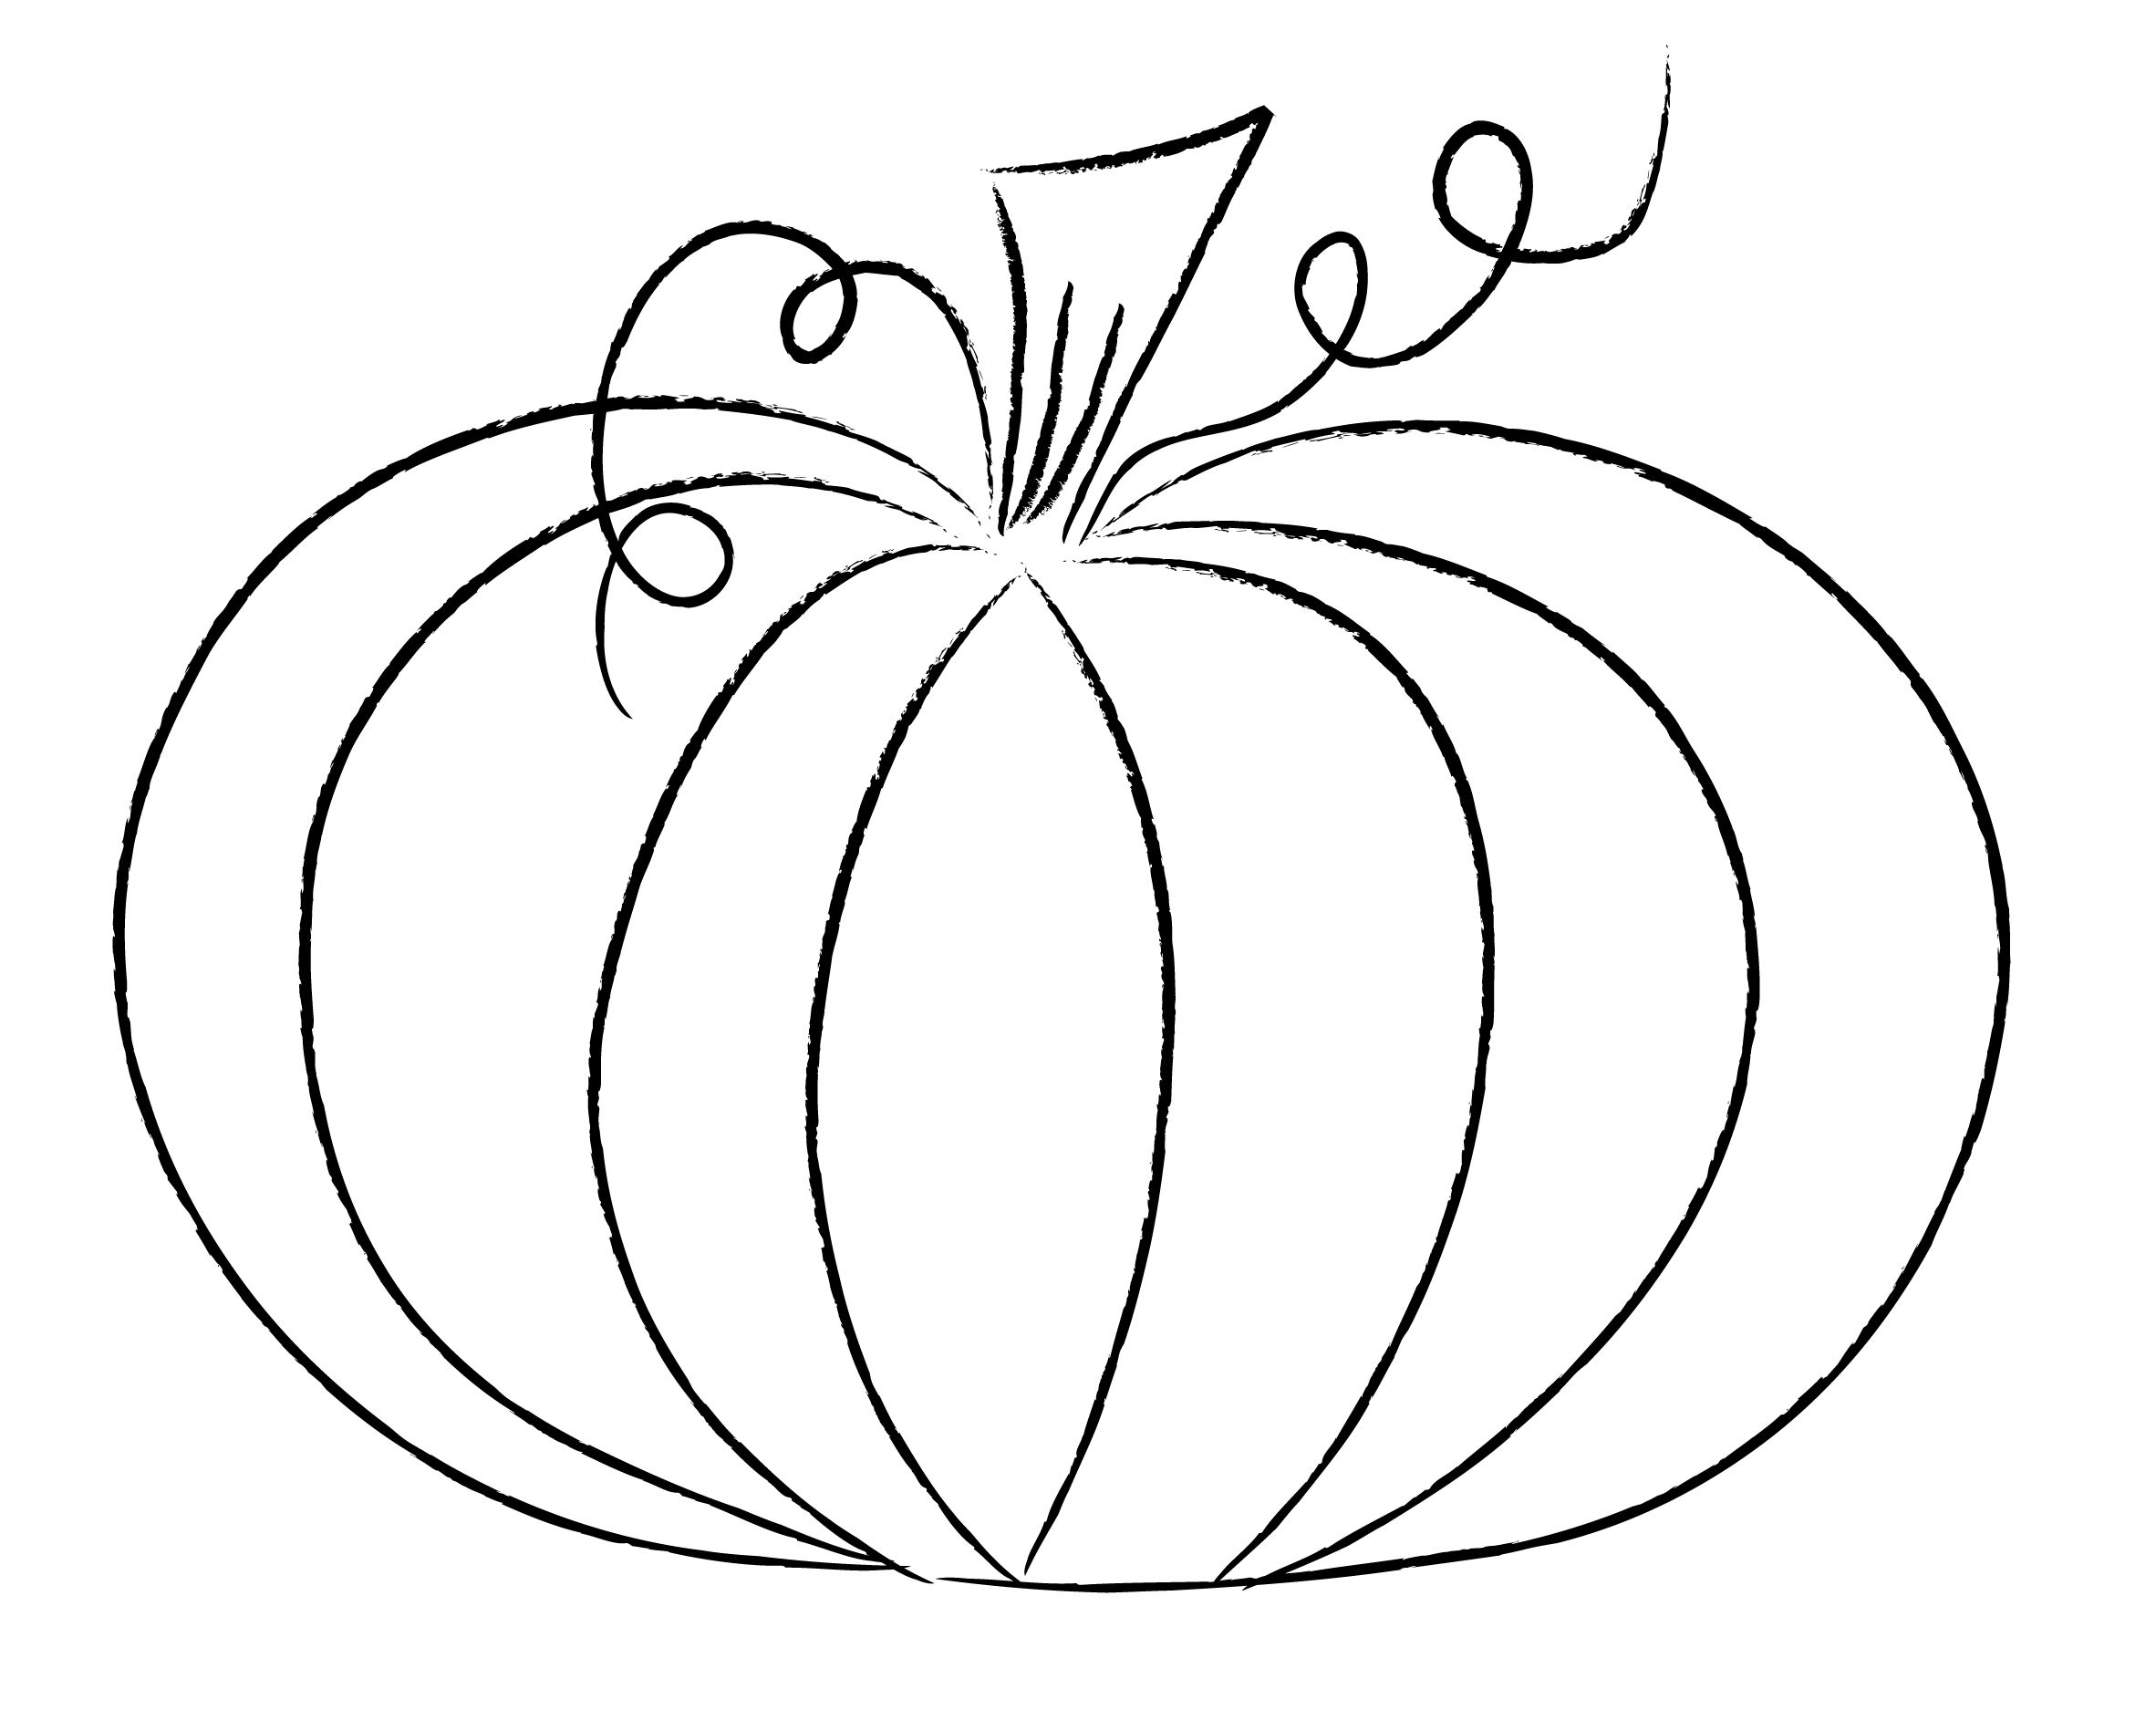 Uncategorized Drawings Of Pumpkins pumpkin outline drawing halloweenfunky com step by com